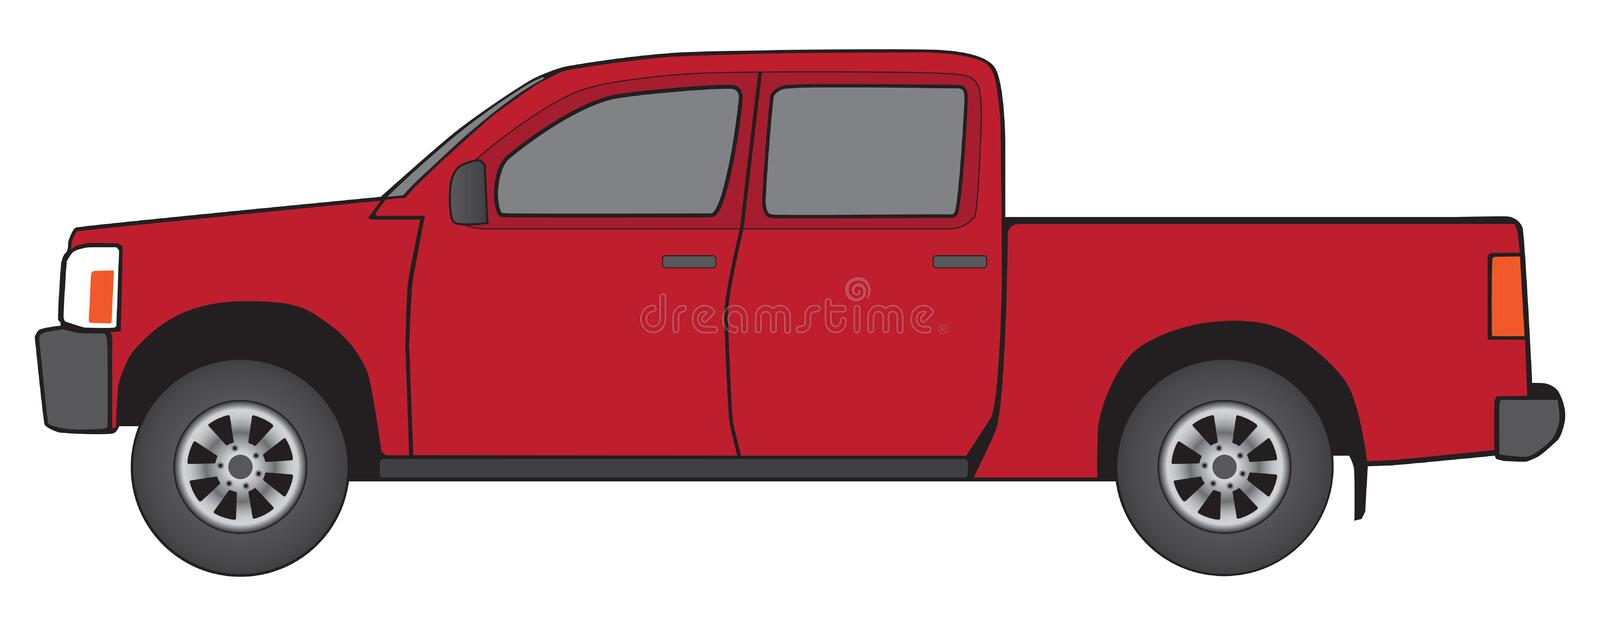 Generic Red Pickup. Side view of generic red pickup with oversized cab to accommodate passenger comfort stock illustration